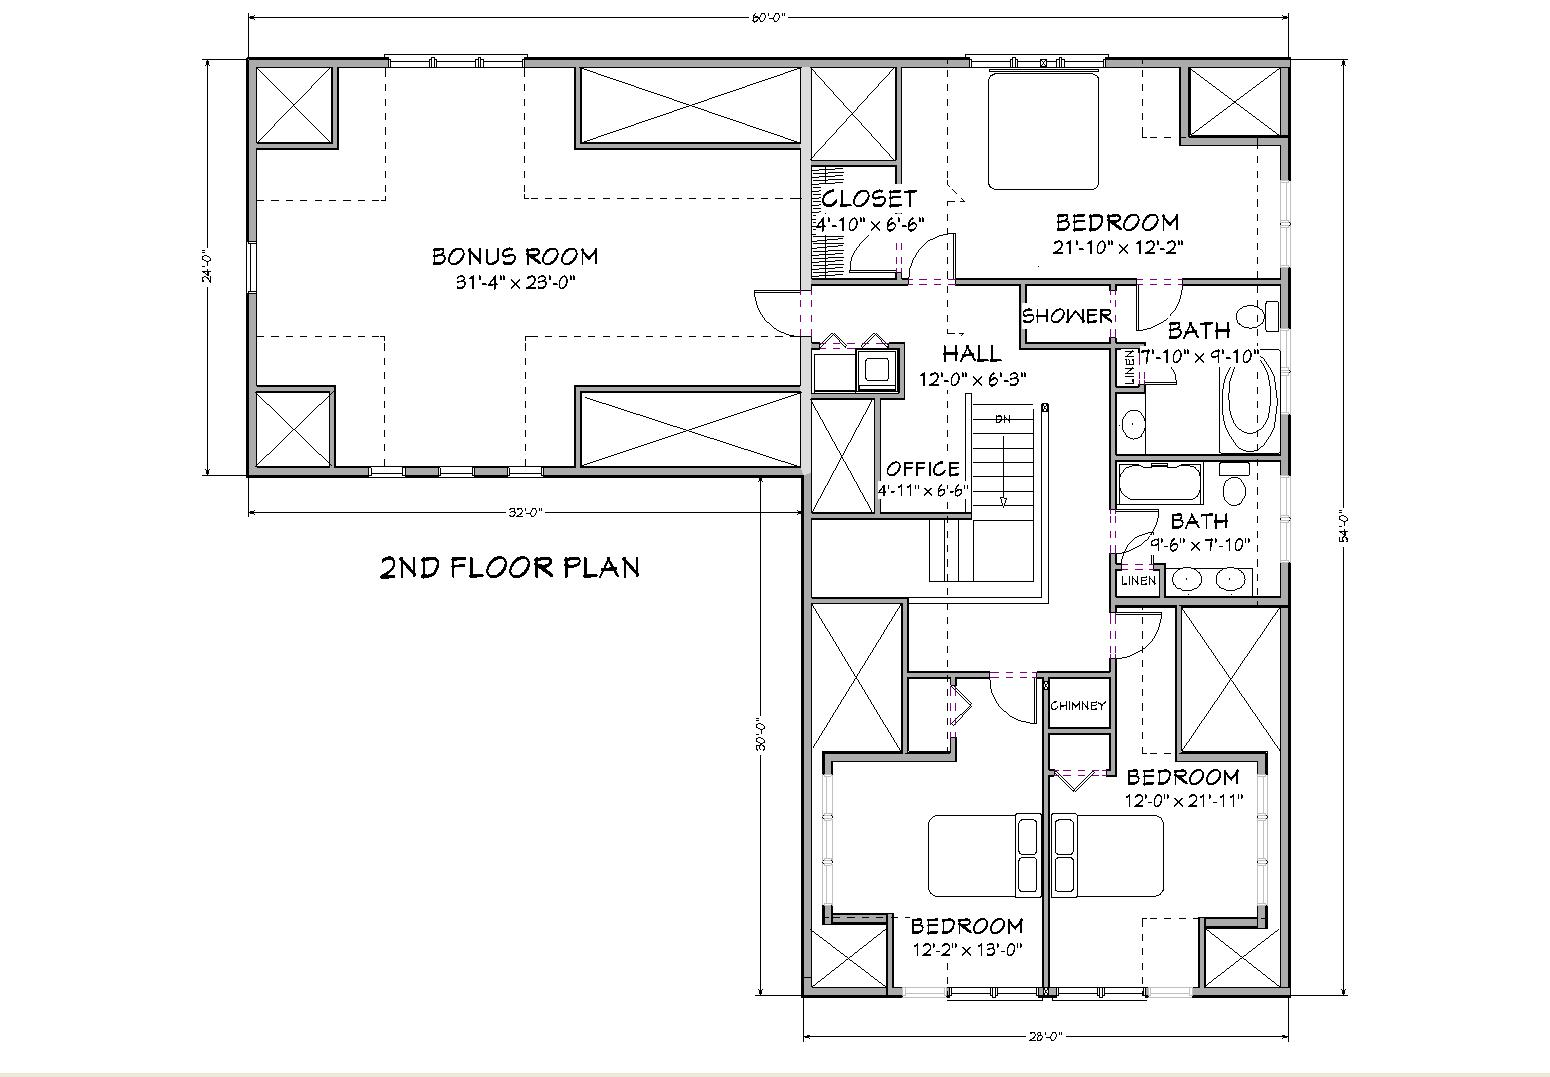 3000 square foot home plans floor plans for 3000 square foot home